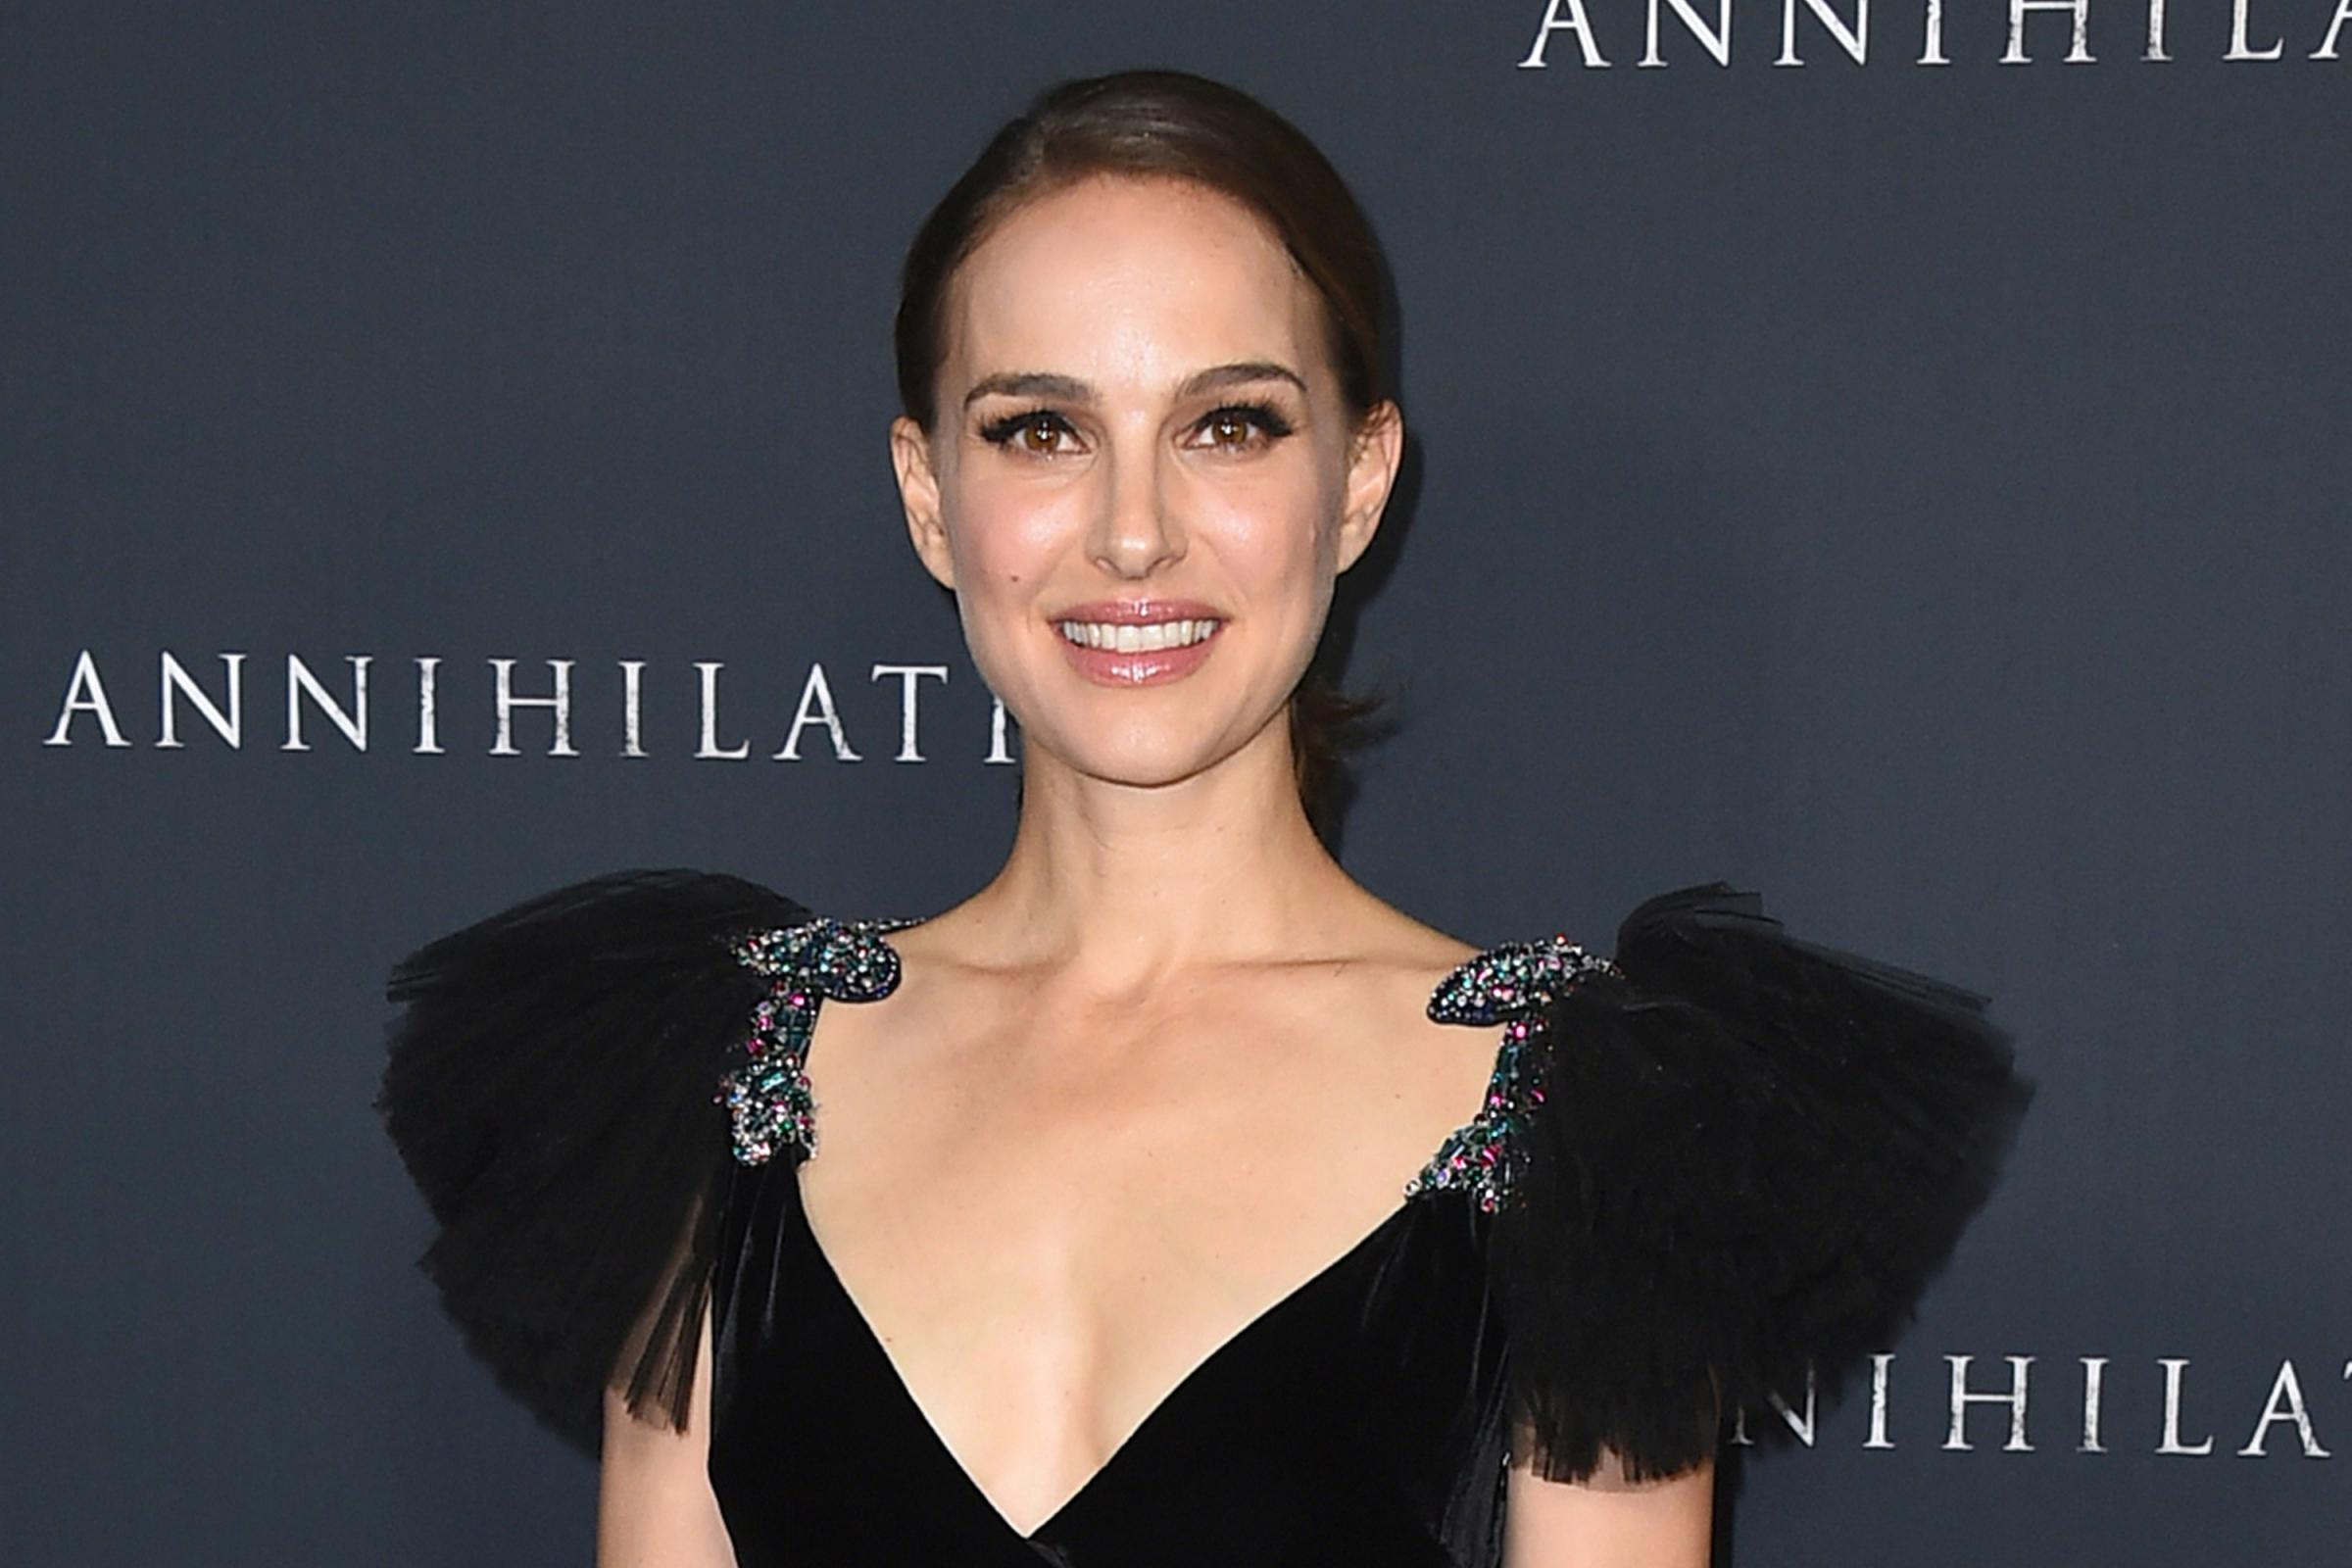 Natalie Portman said she will not collect a Genesis Prize (Jordan Strauss/AP)